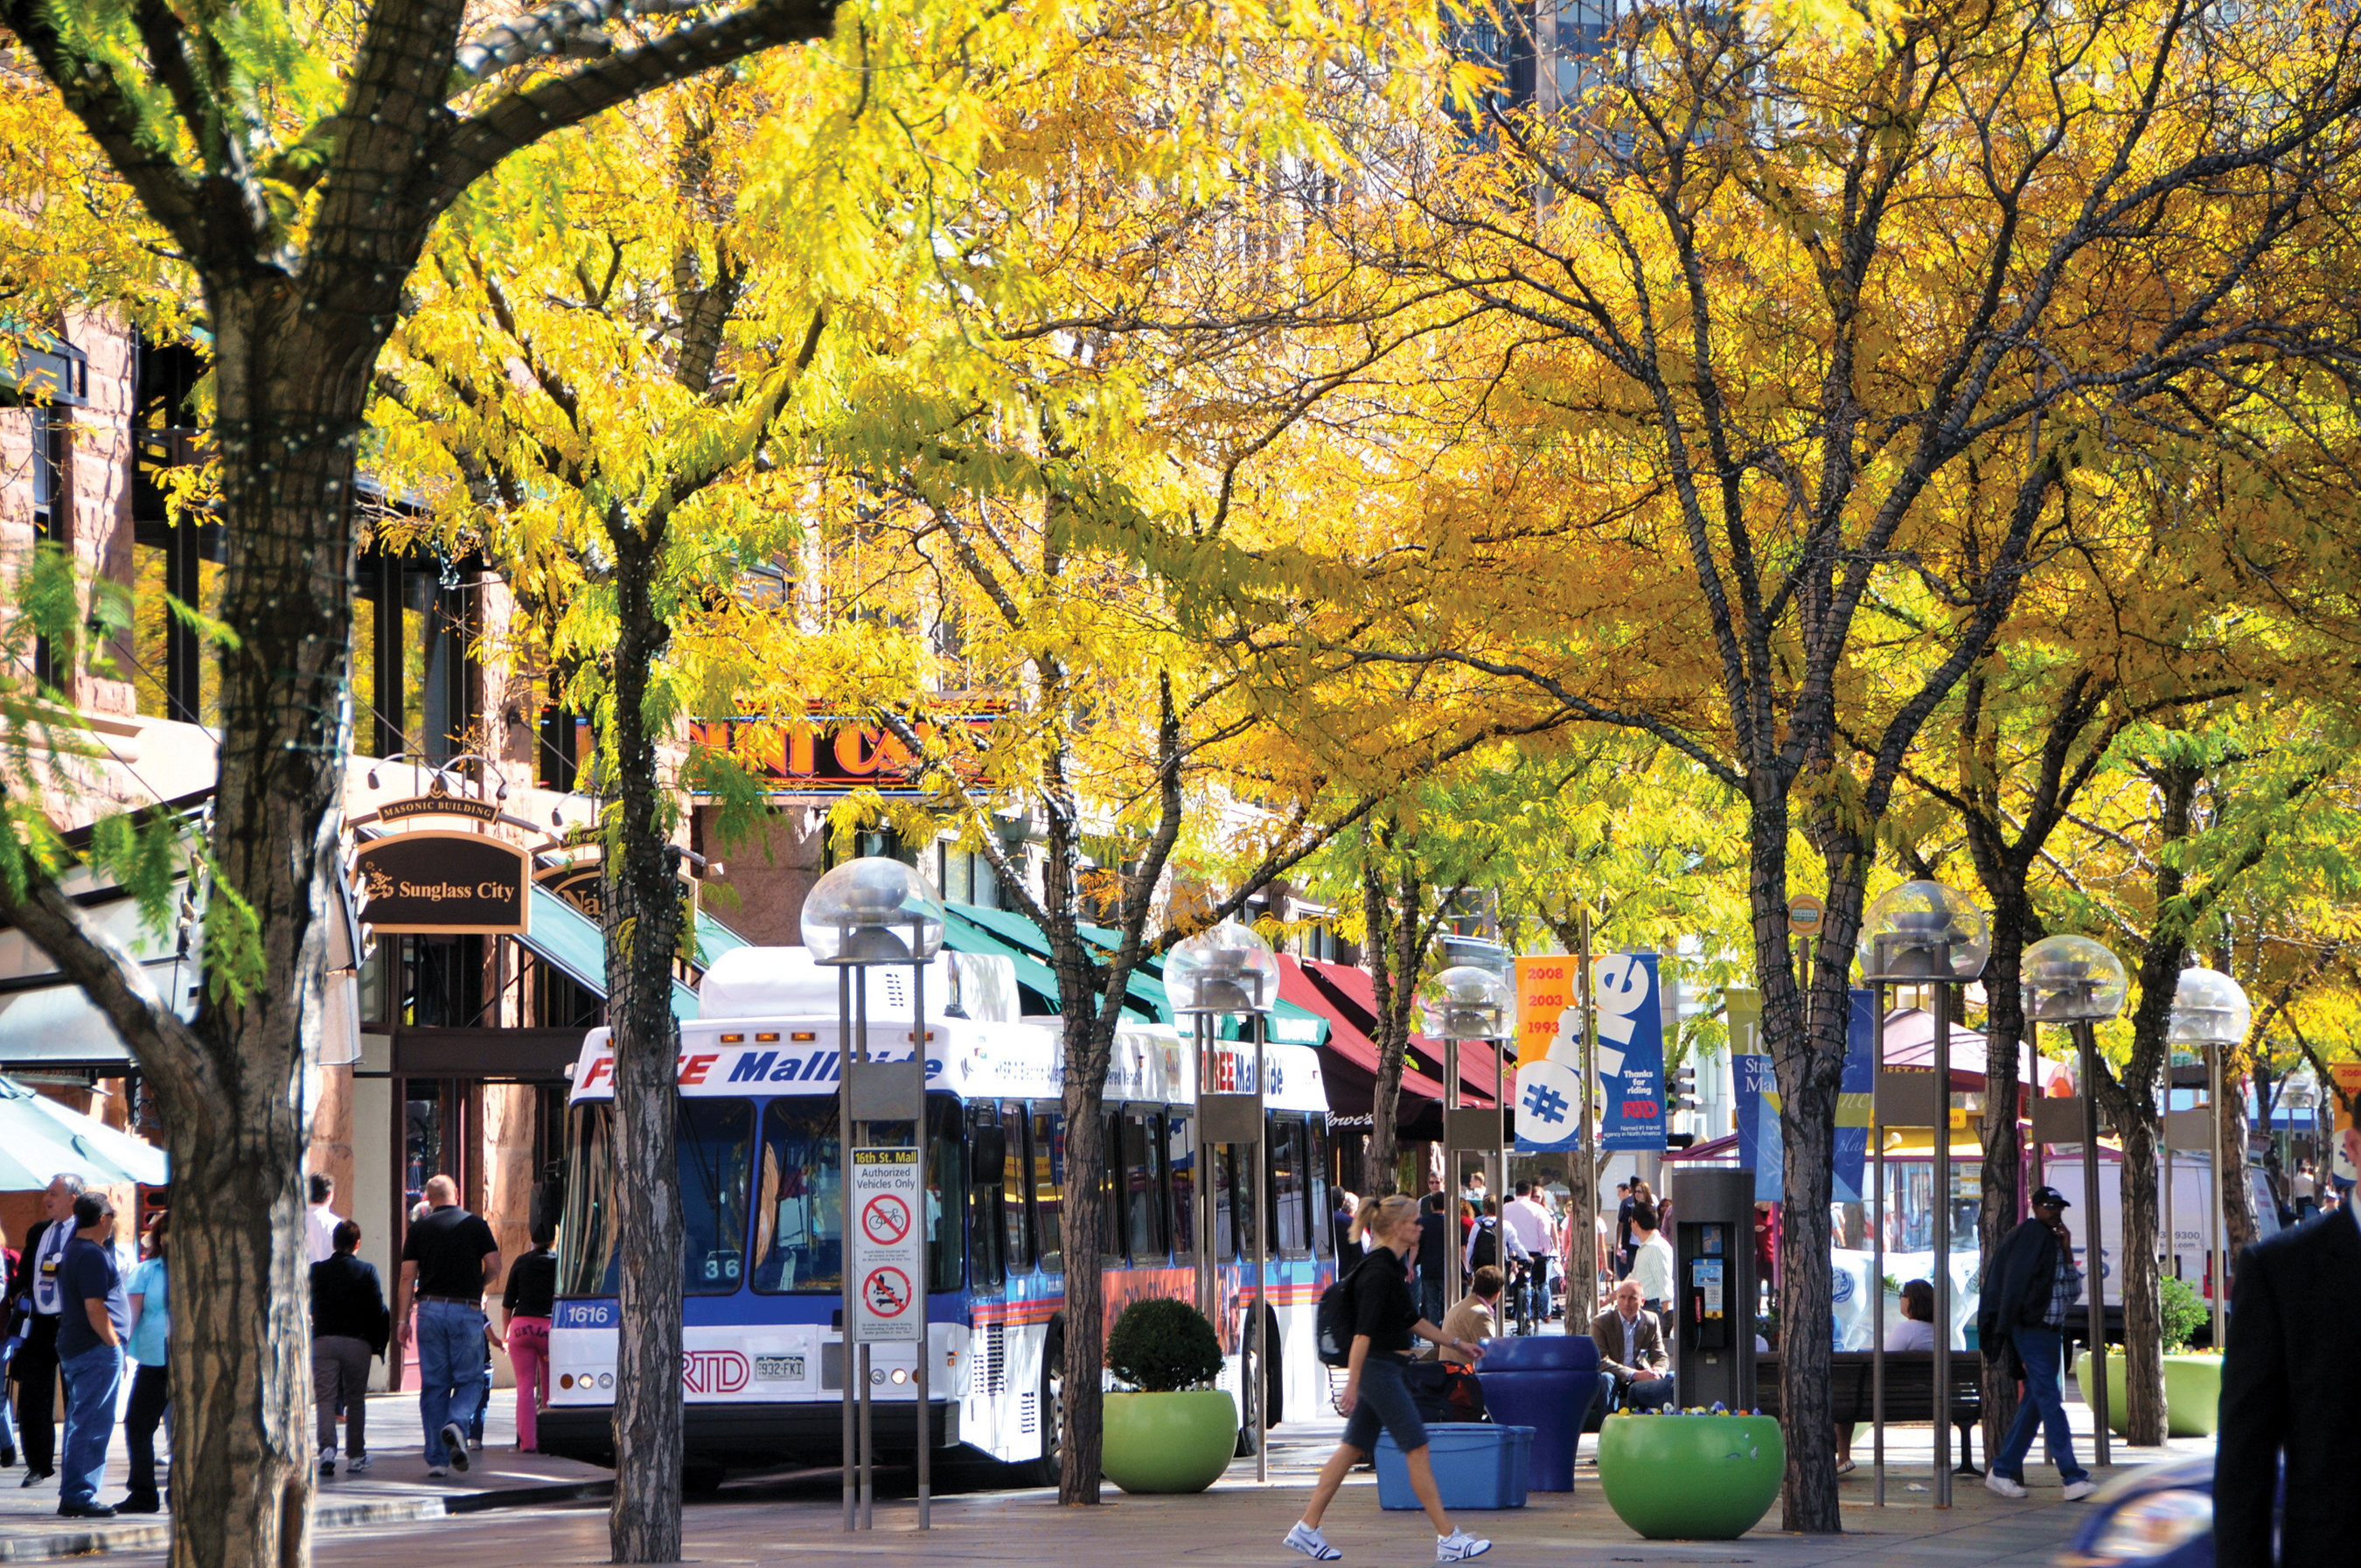 16th Street Mall in Denver, Colorado| VISIT DENVER on little rock zoo map, newport on the levee map, 16th street mall colorado, park meadows map, 16 street mall map, san antonio zoo map, 16th street mall plan, 16th street mall directory, newbury street map, gold line map, 16th street mall restaurants, 16th street denver co, fulton street map, 16th mall denver, 16th street mall pianos, 16th street mall food, ermou street map, john f. kennedy international airport map, 16th street mall shuttle, south street seaport map,